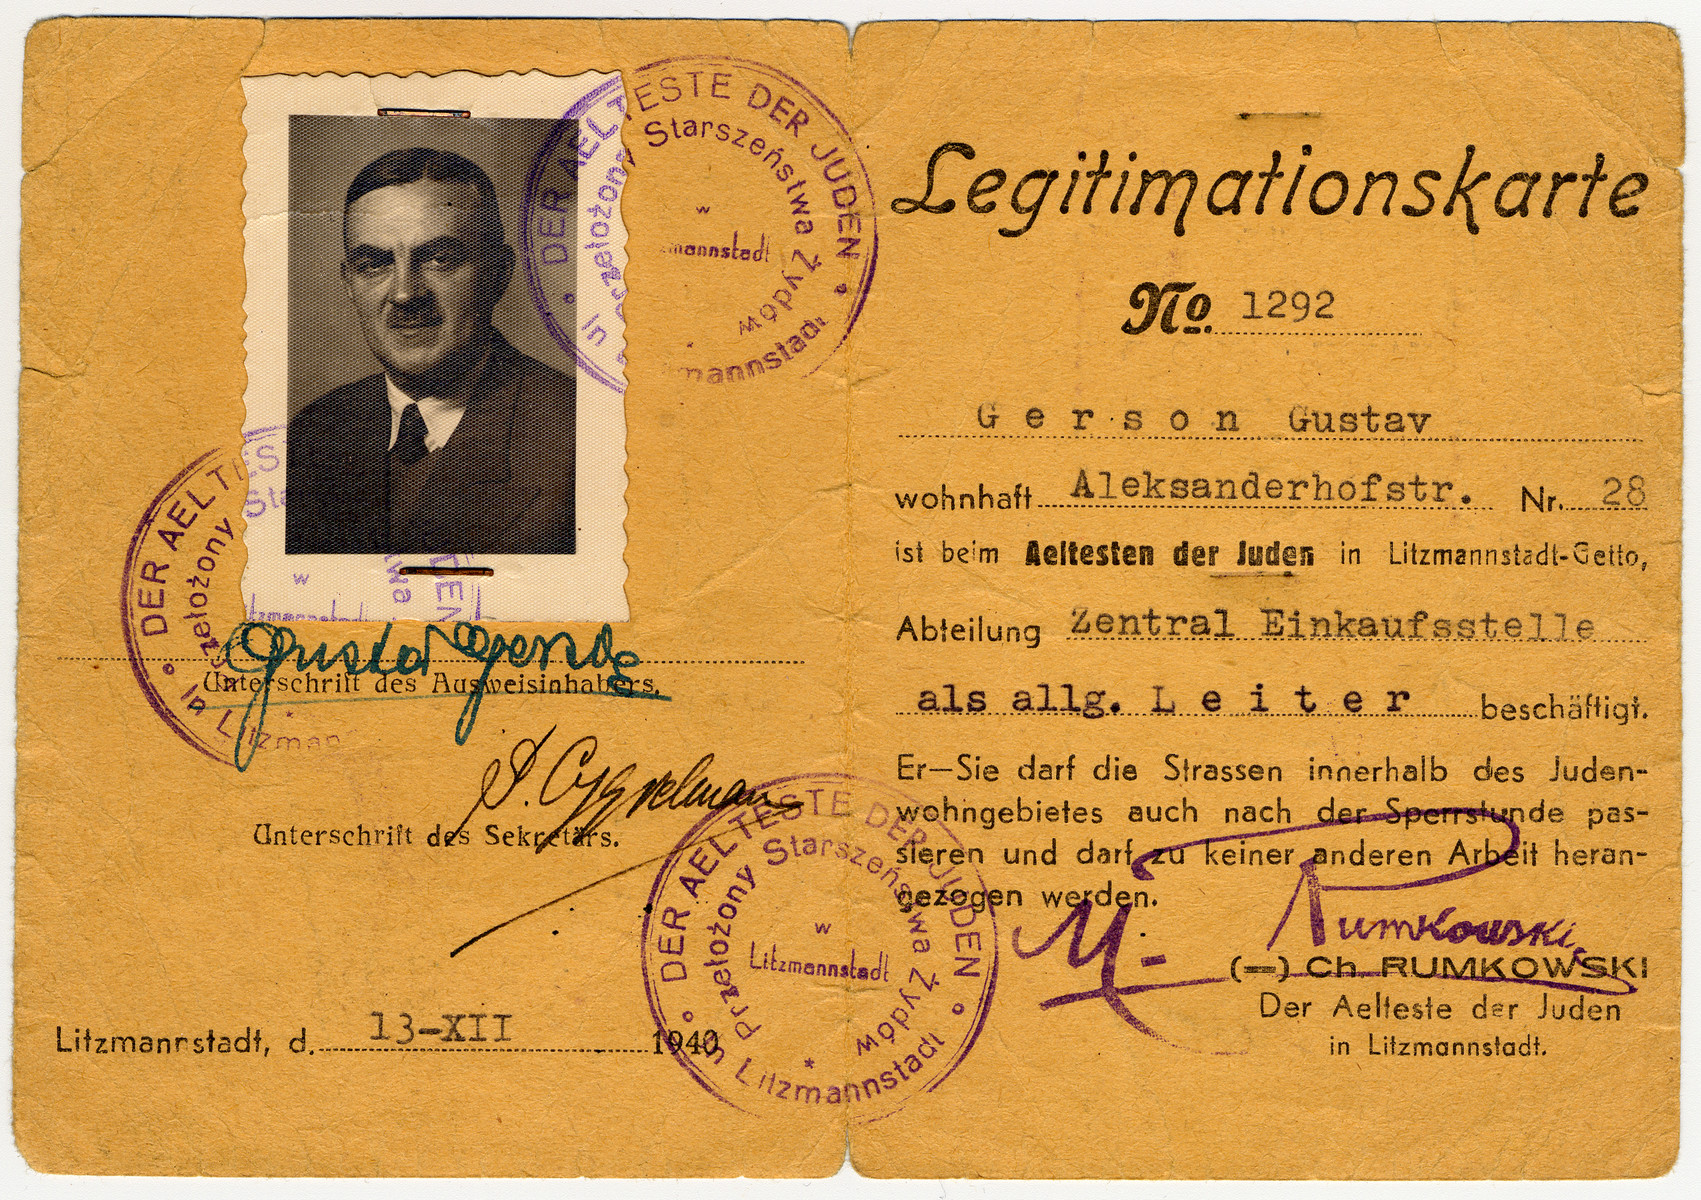 Identification card issued to Gustaw Gerson in the Lodz ghetto.